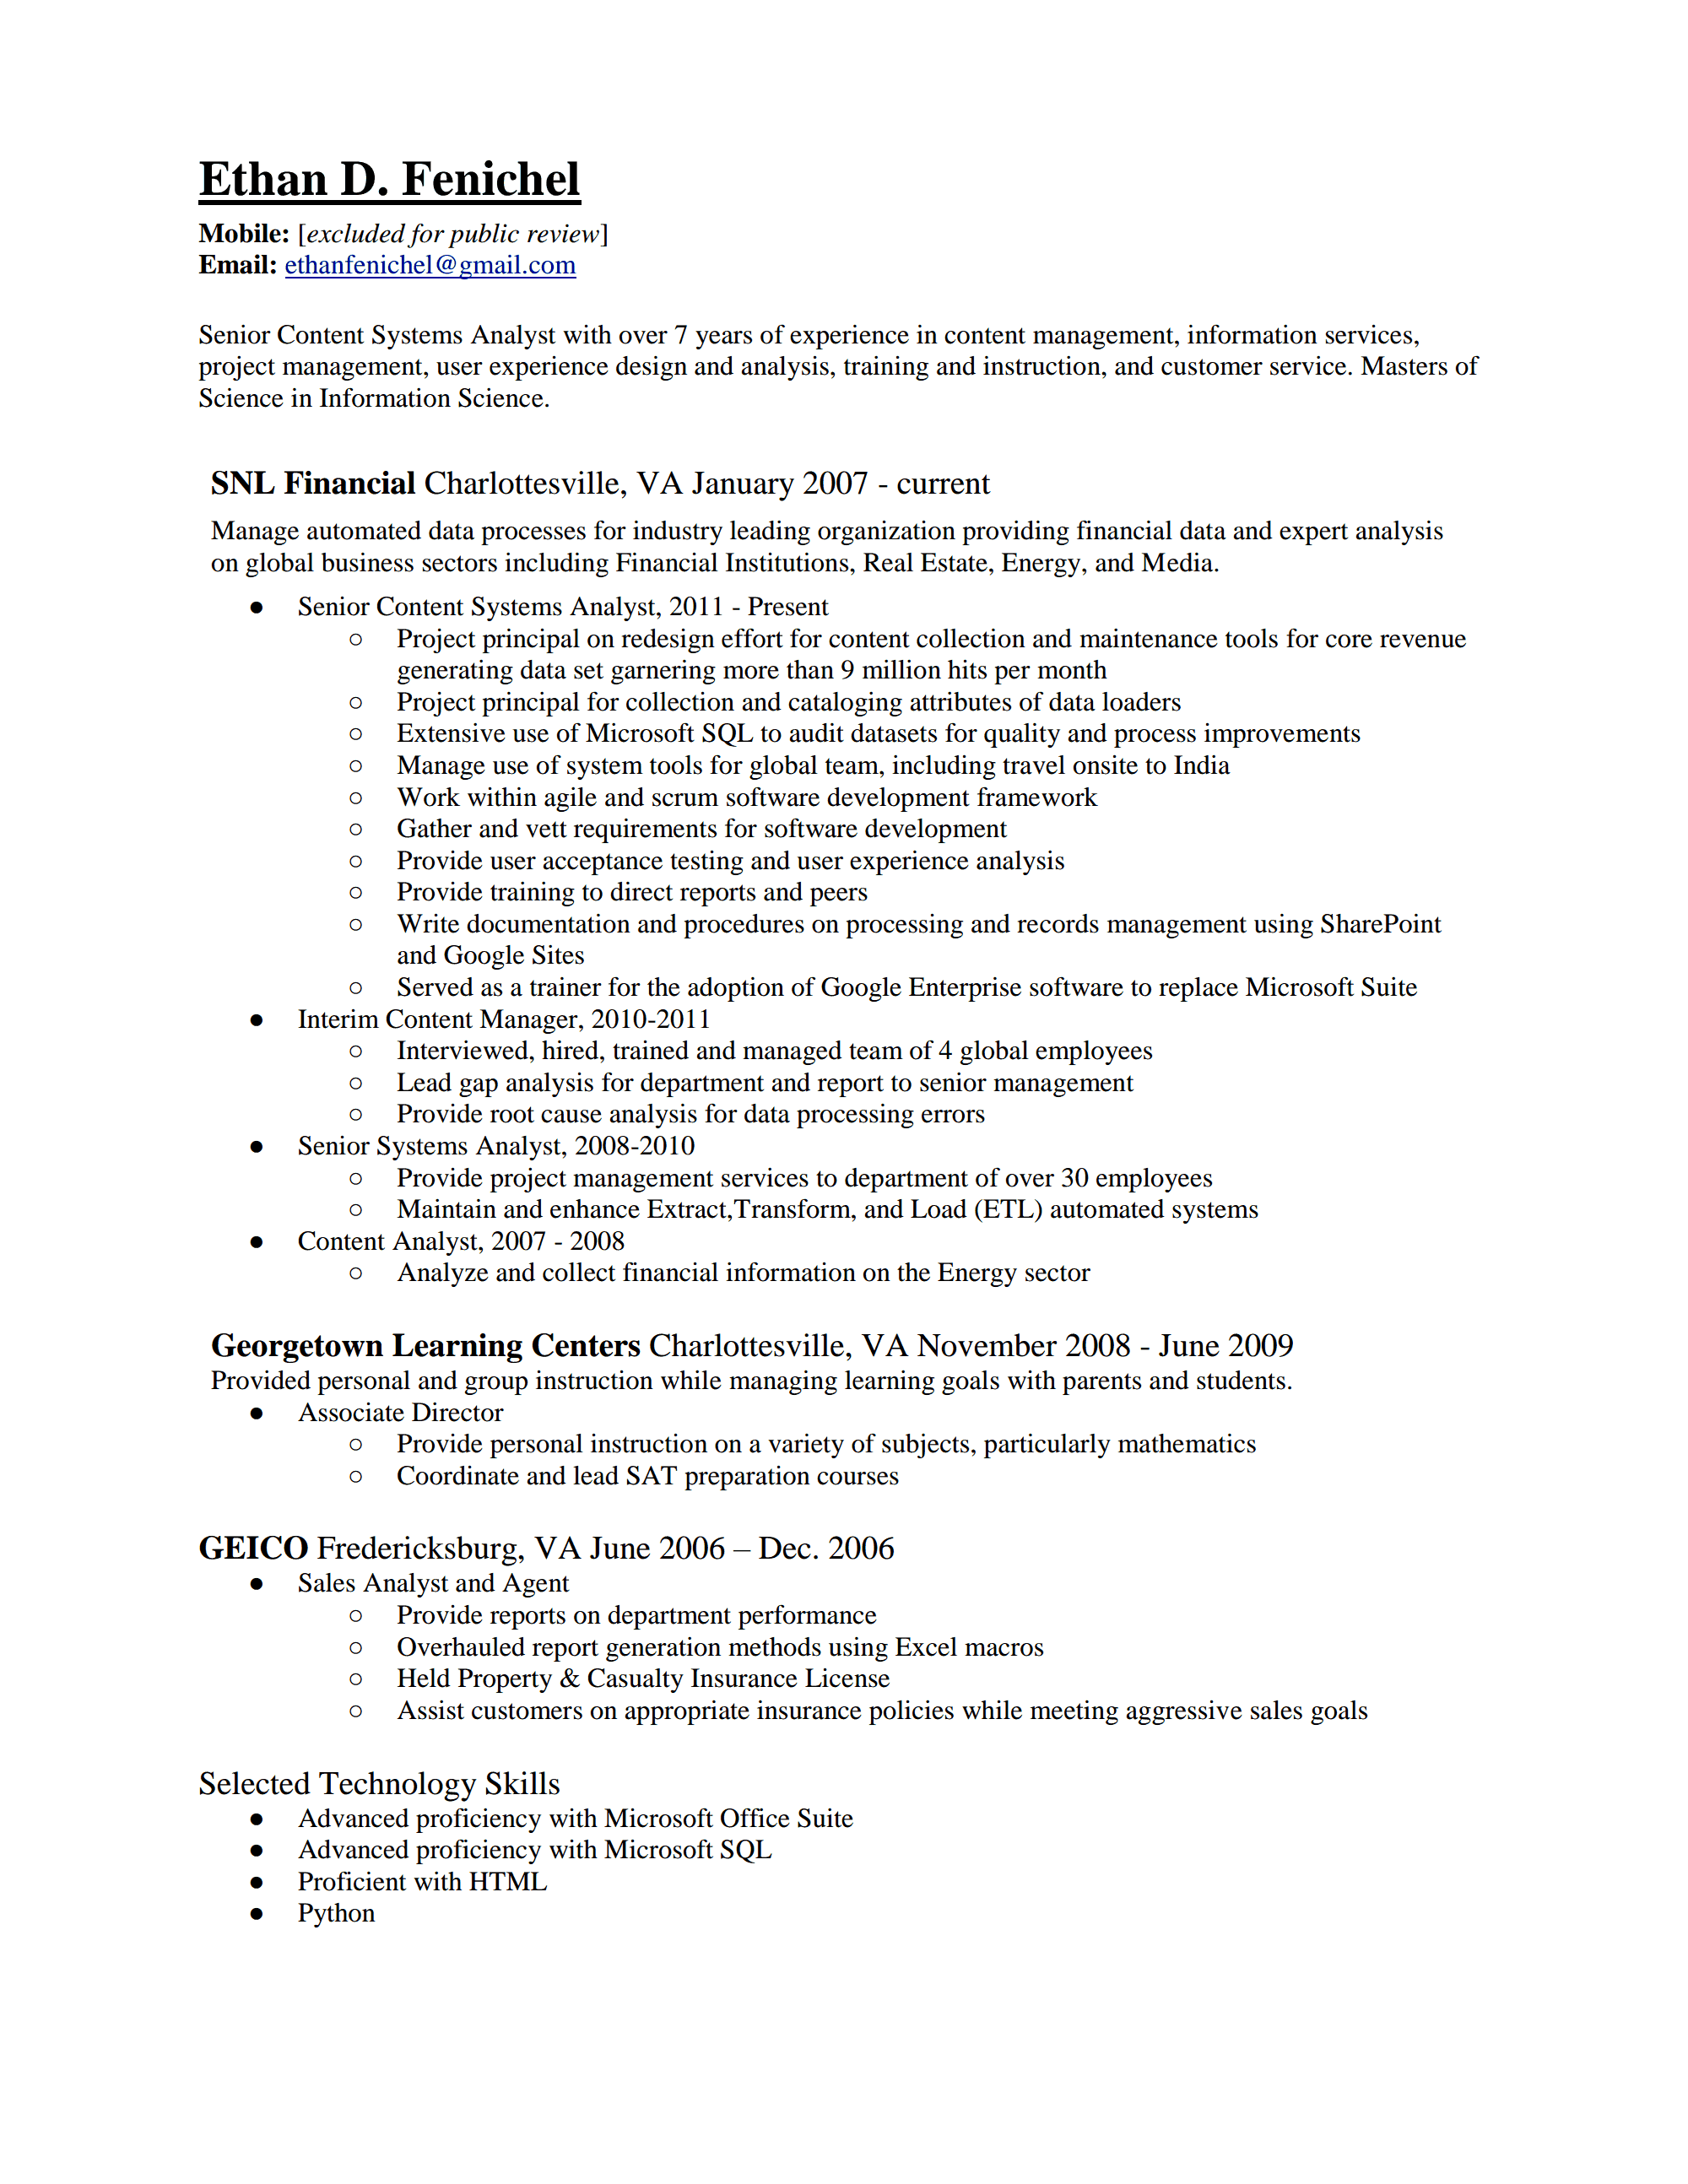 Ethan Fenichel P1  Review My Resume